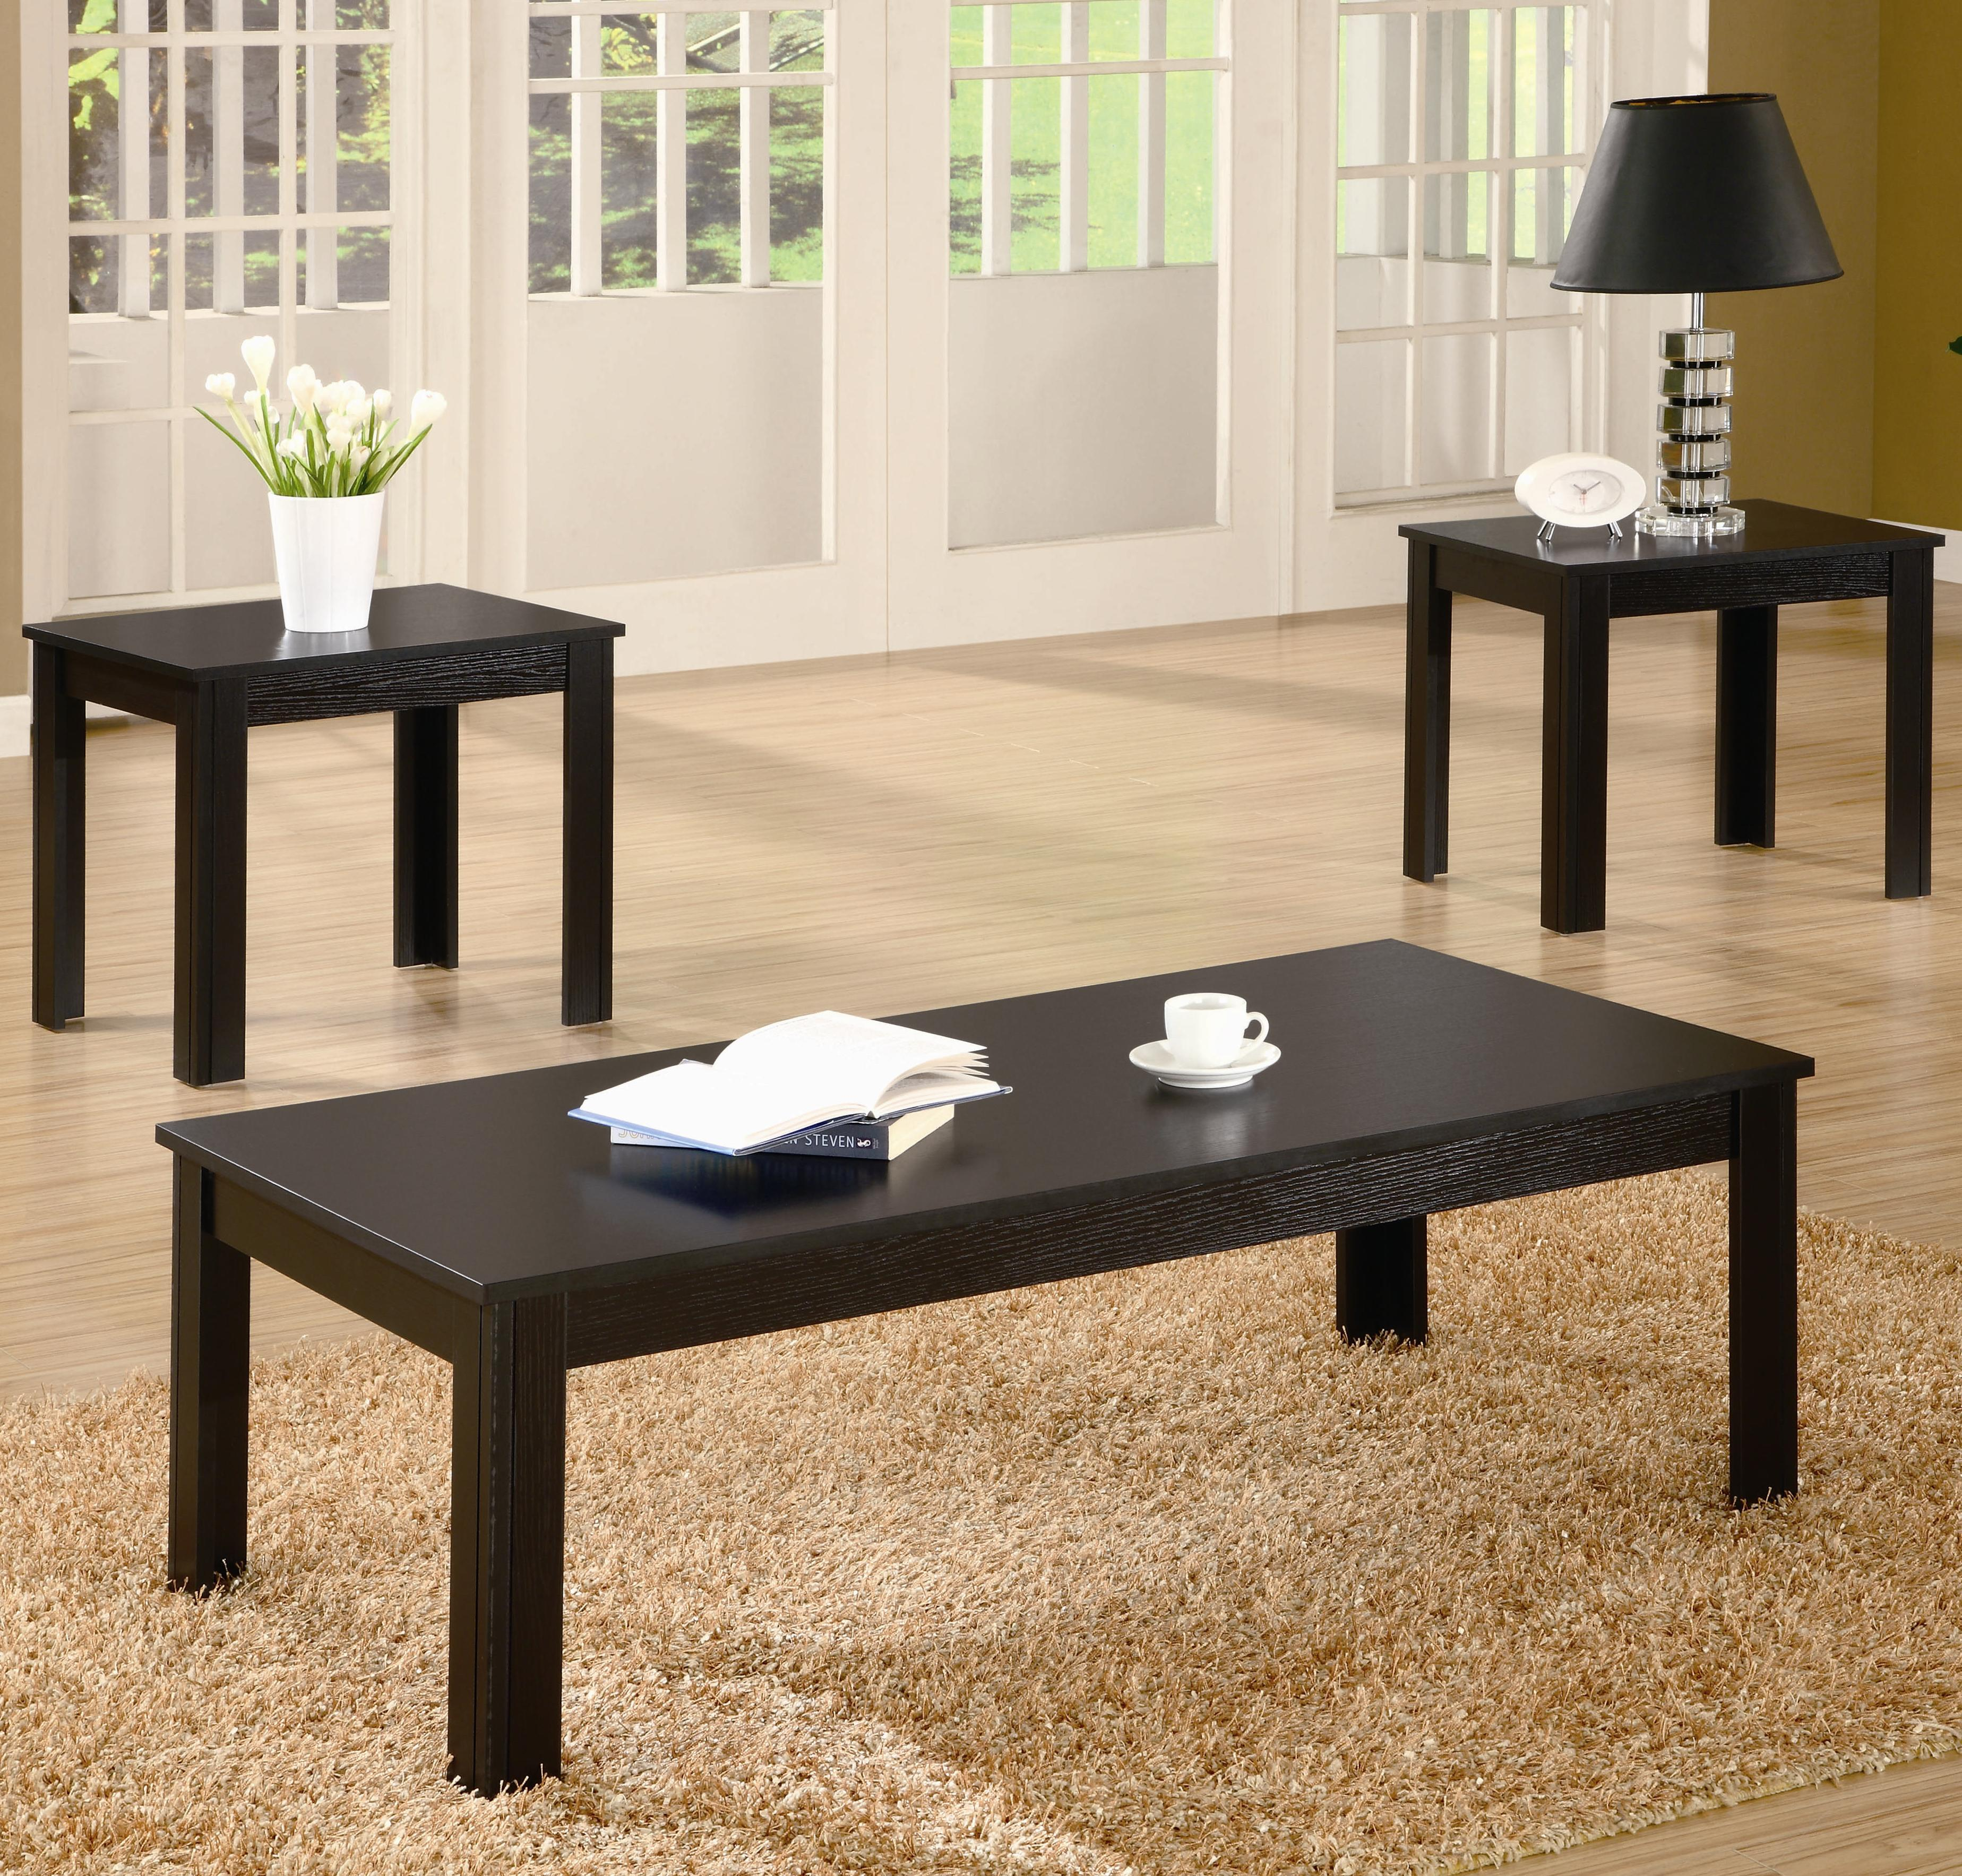 coffee tables ideas modern table and end set ashley black pieces occasional three living room decoration square rectangle shapes furniture thorndale lift top traditional pulaski